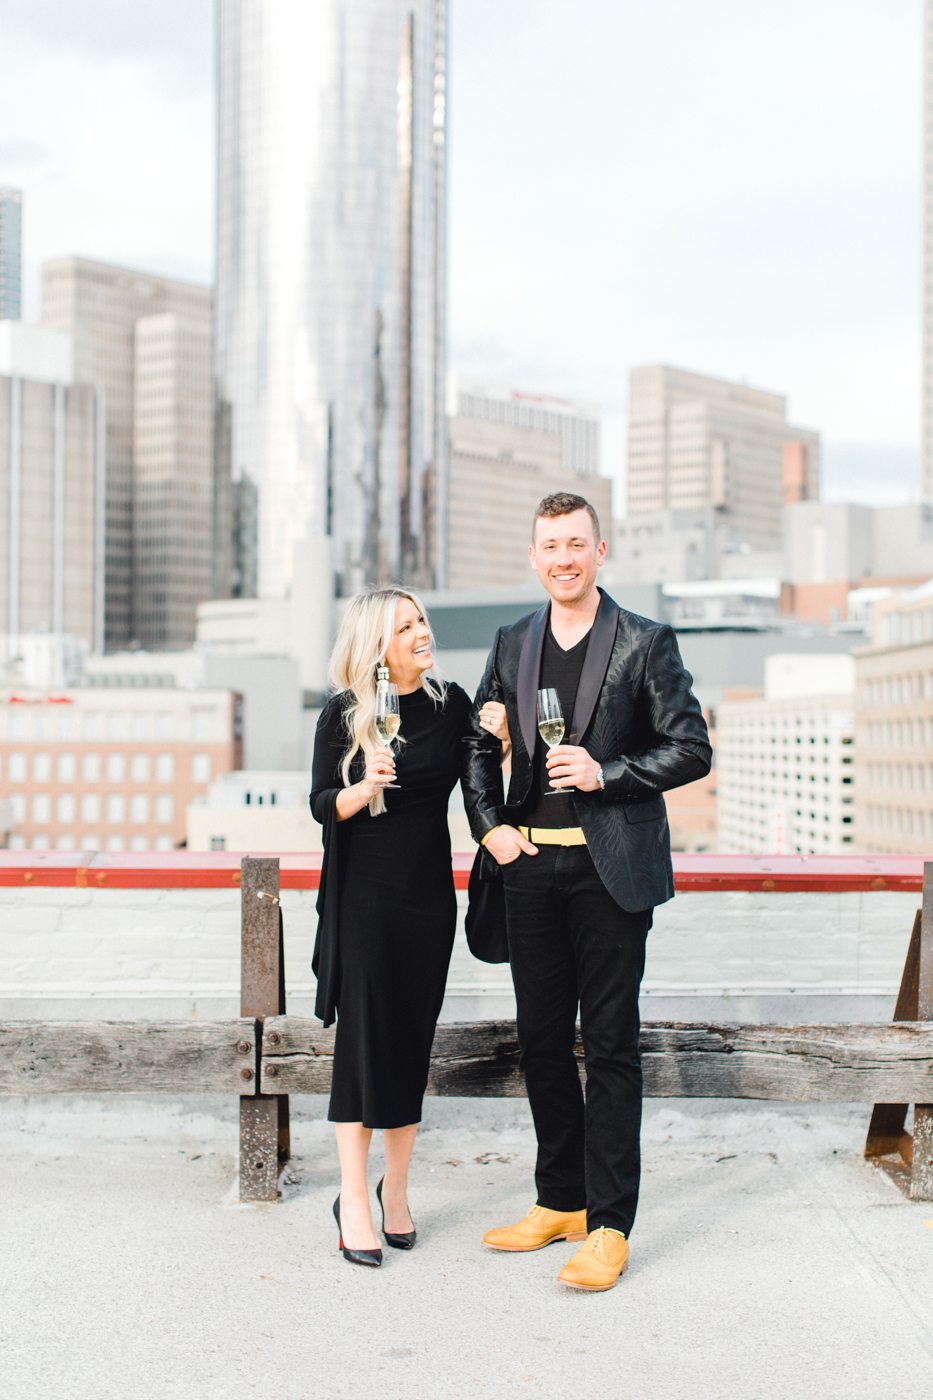 four corners photography best atlanta wedding photographer downtown atlanta engagement session engagement proposal ventanas downtown atlanta wedding atlanta wedding photographer-9.jpg